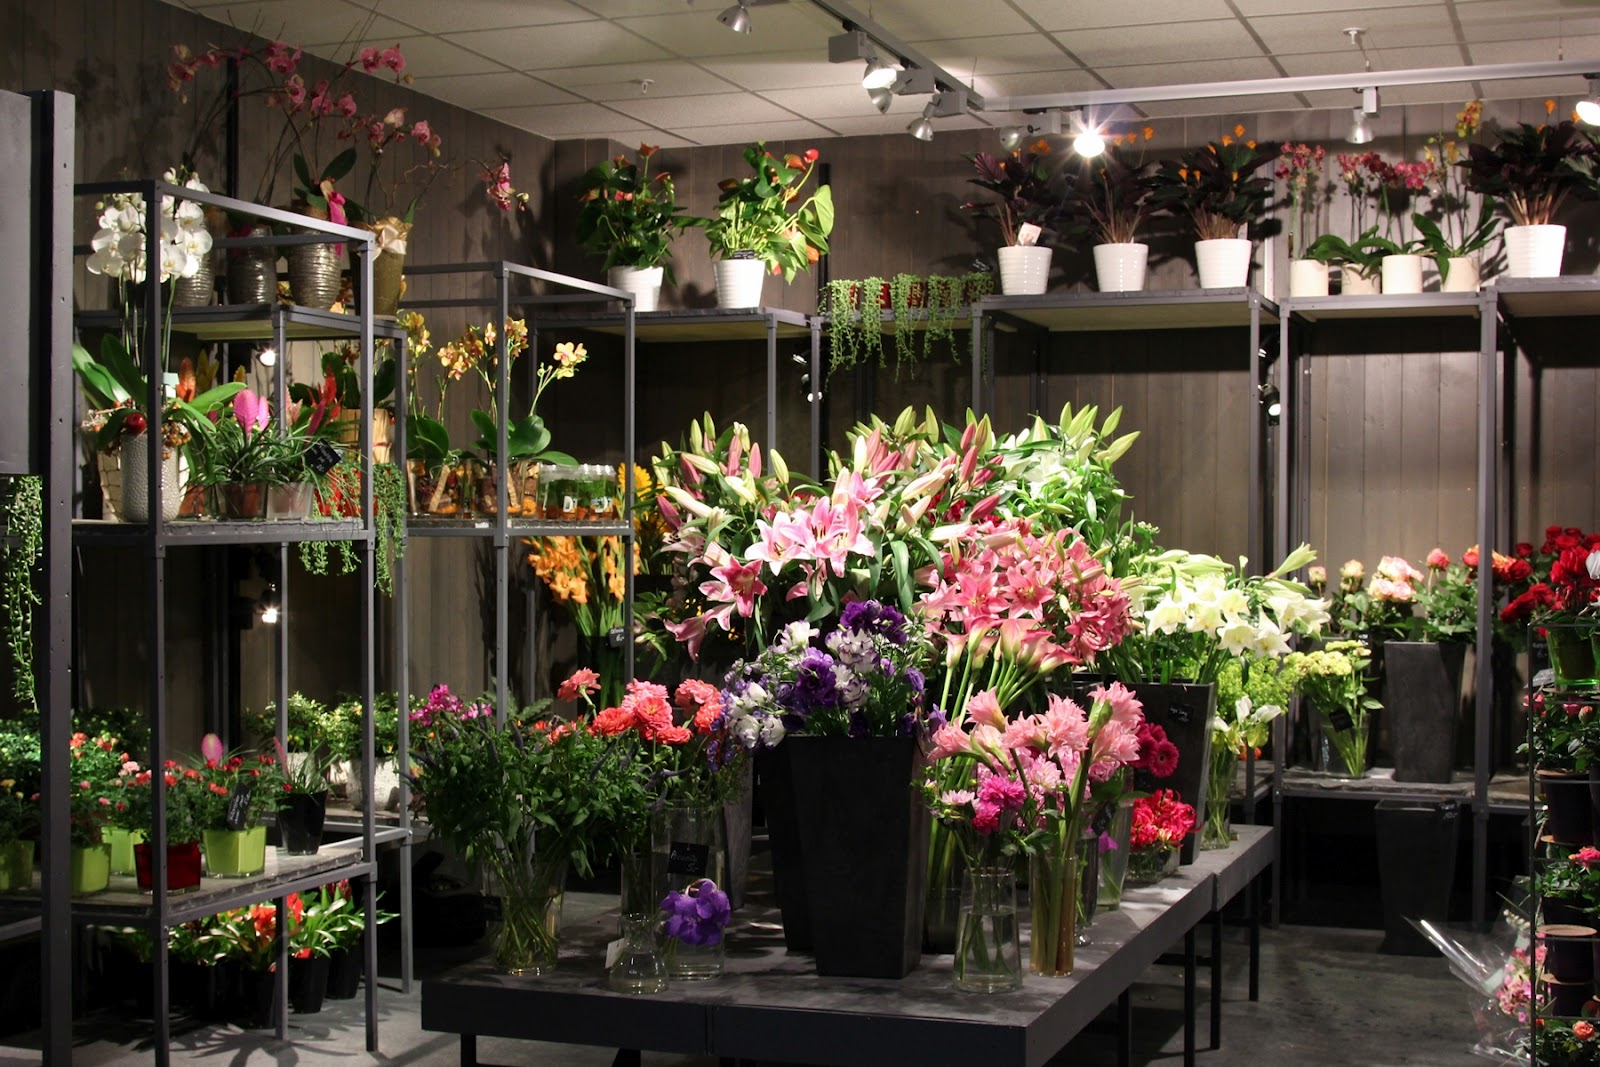 Divine flor al mfh part 5a geneva gruyere and bern of for Flower shop design layouts